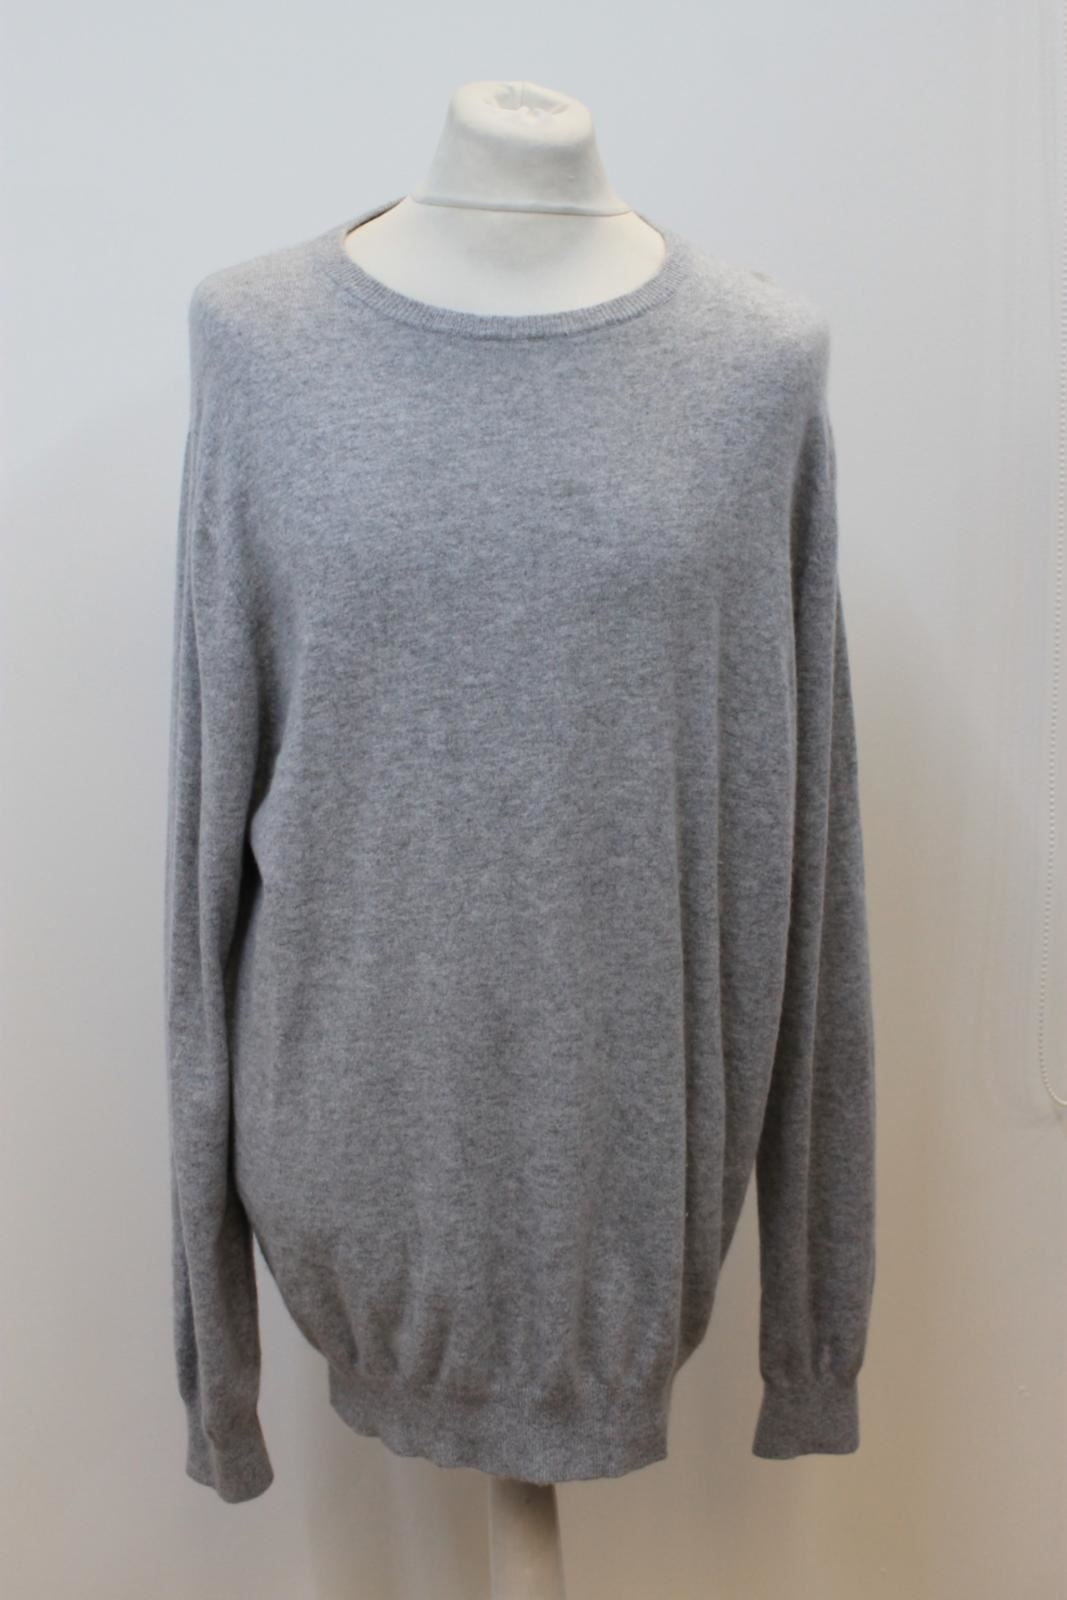 PURE COLLECTION Men's 100% Cashmere Grey Long Sleeve Knitted Jumper Size XXL